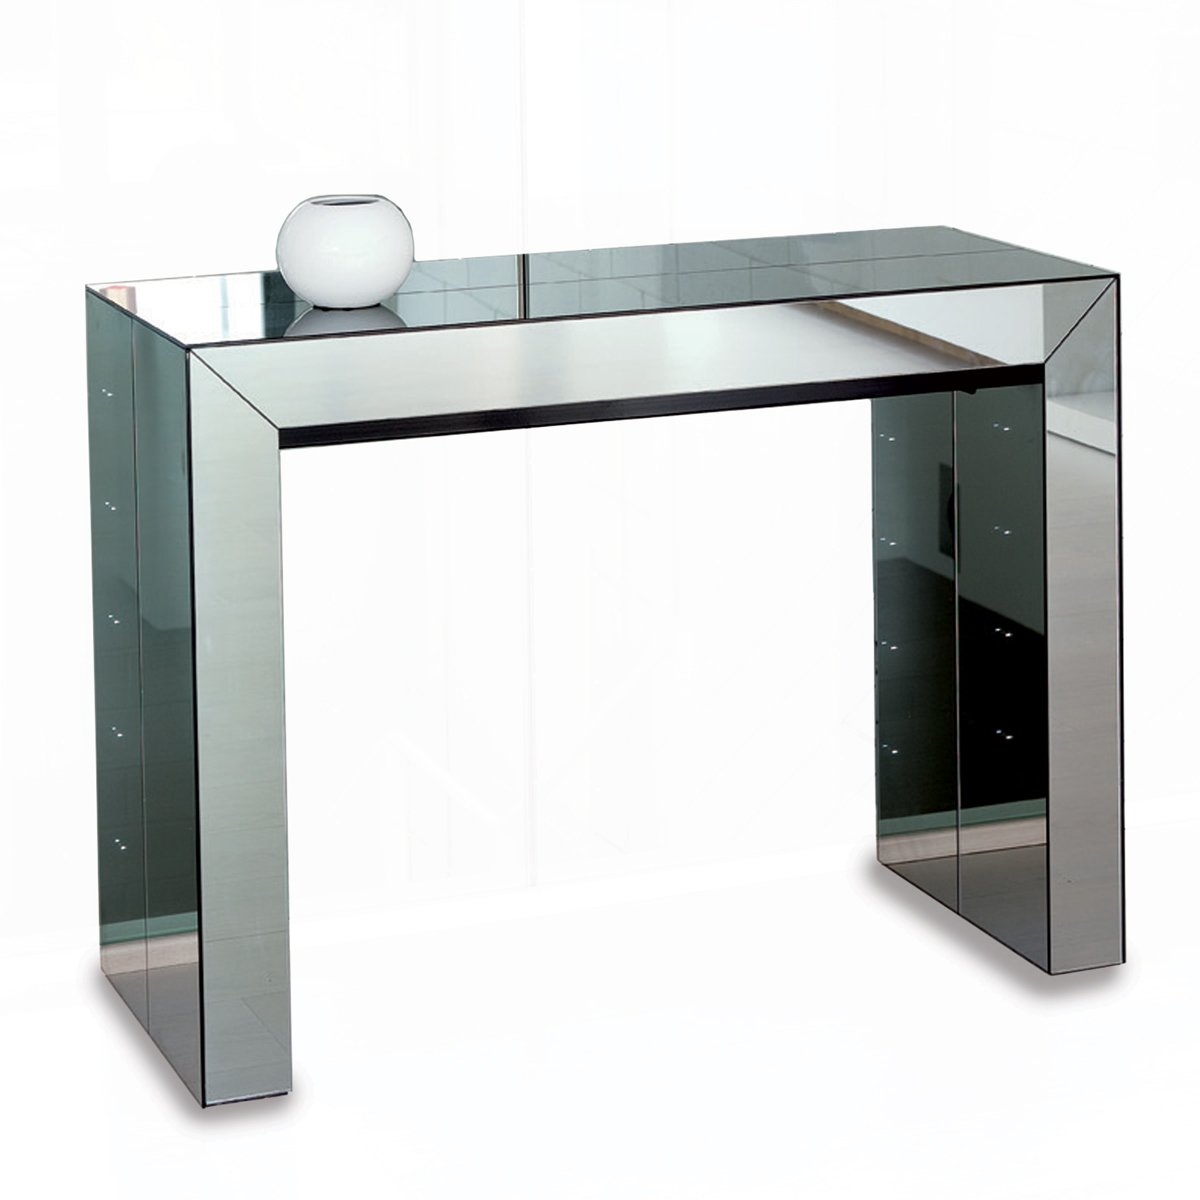 table console miroir meubles et atmosph re. Black Bedroom Furniture Sets. Home Design Ideas